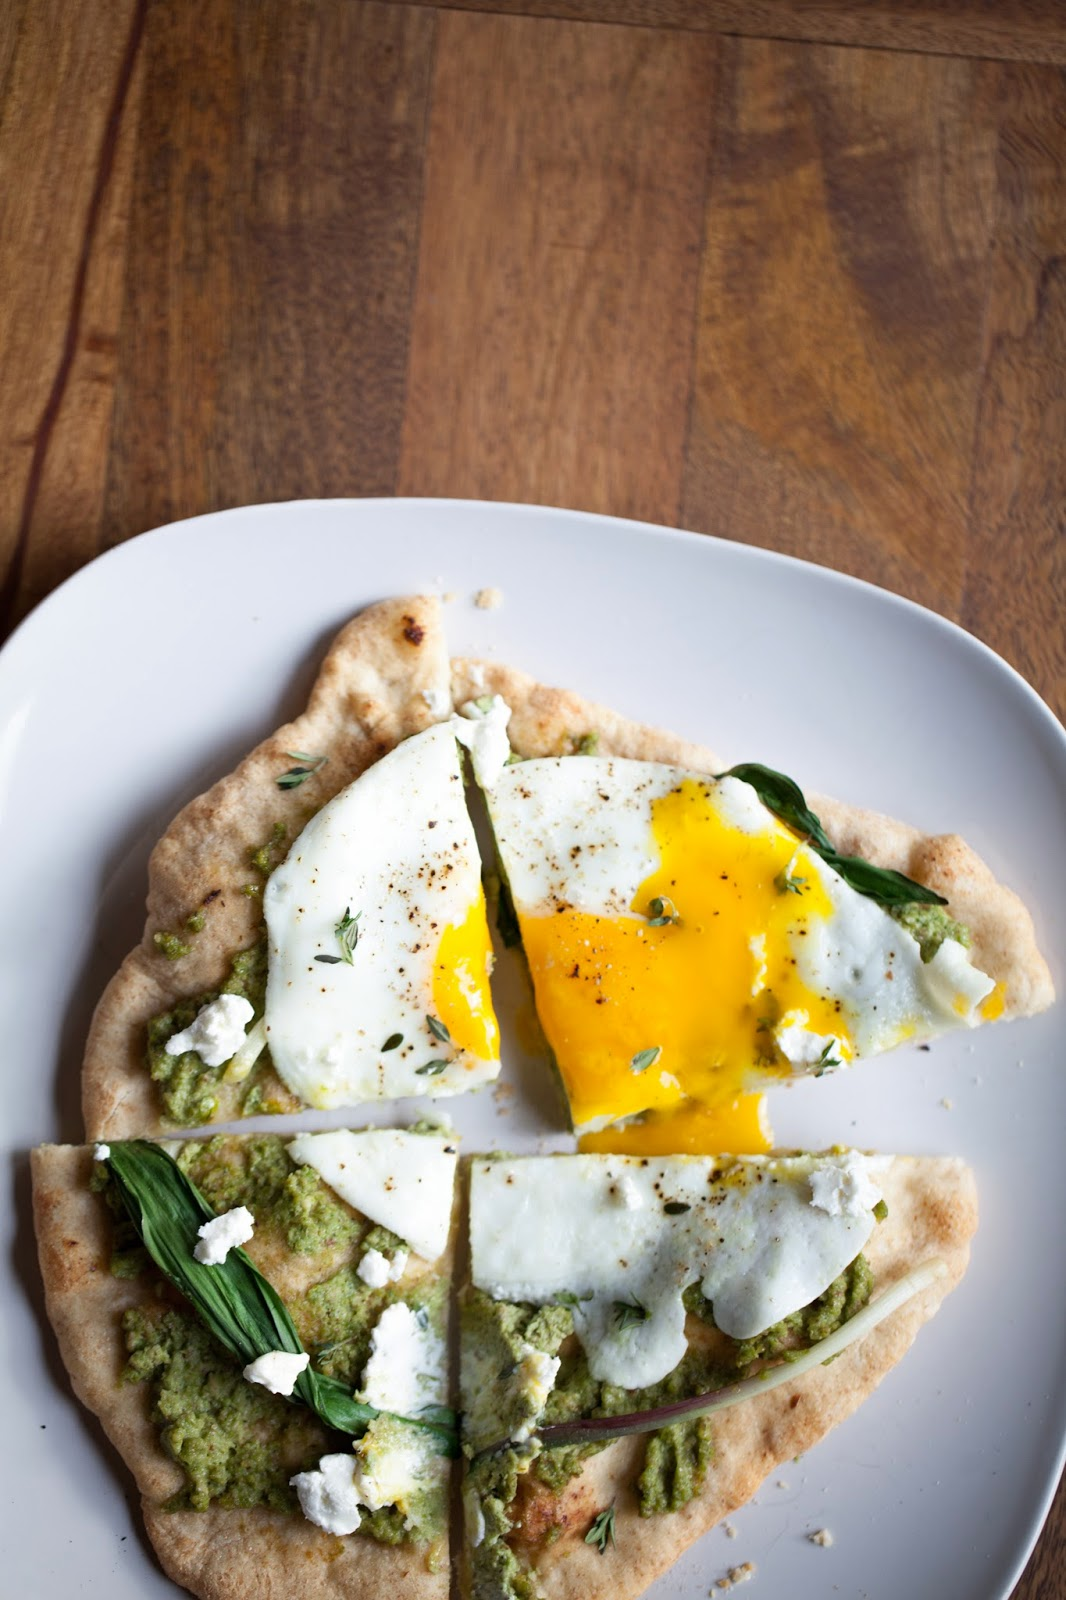 Spring Pizza with asparagus pesto, ramps, fried egg, goat cheese and thyme